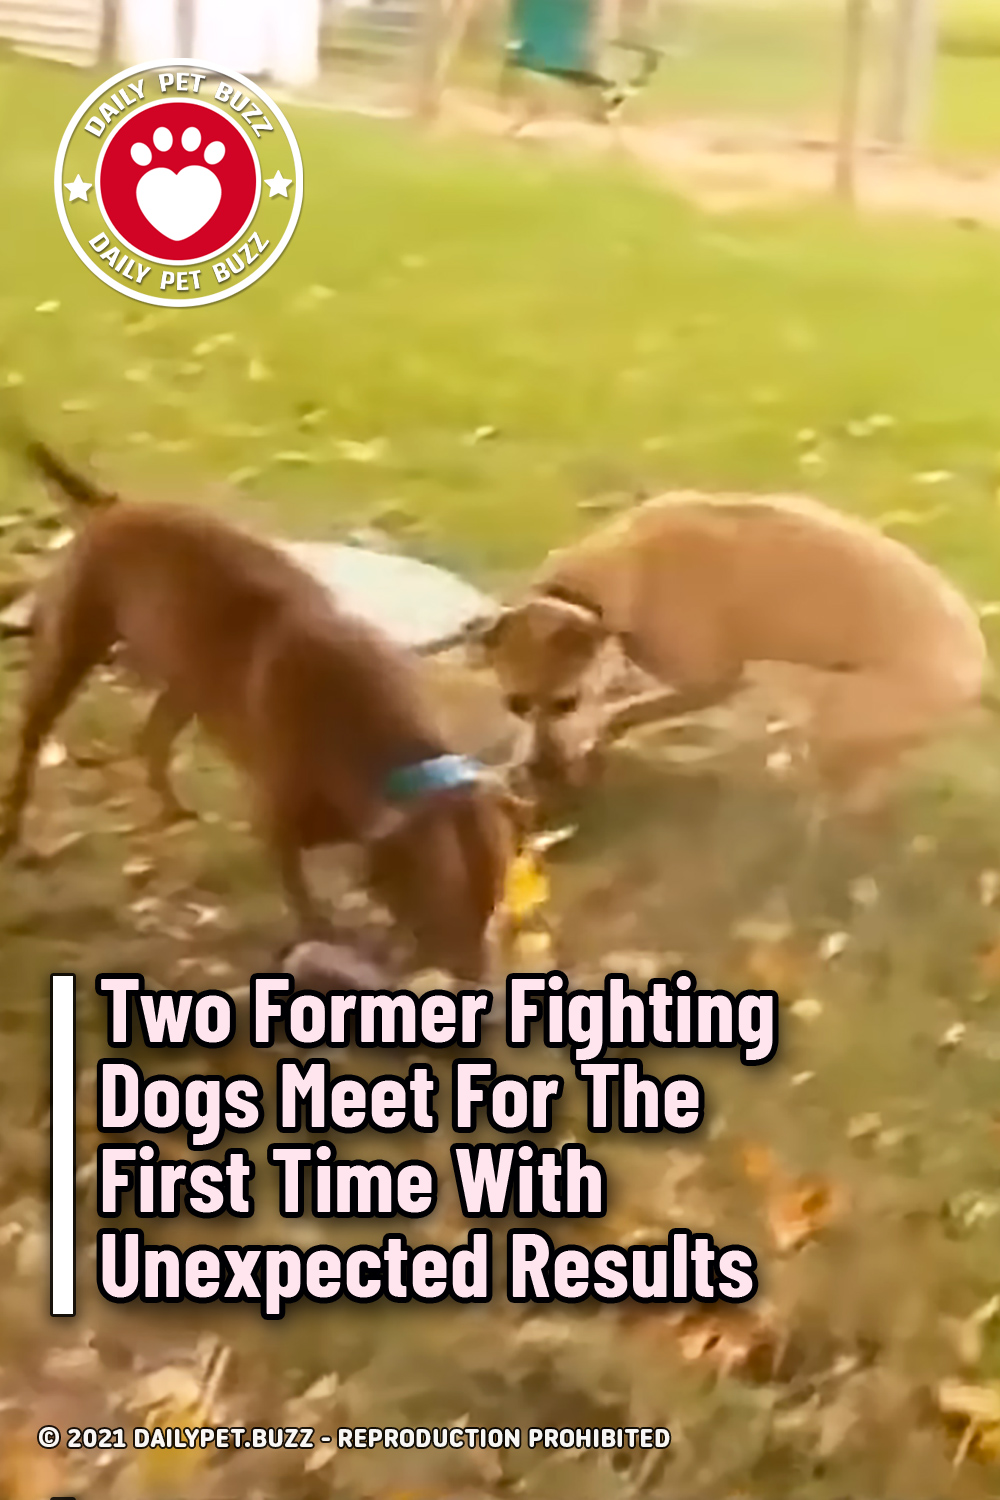 Two Former Fighting Dogs Meet For The First Time With Unexpected Results